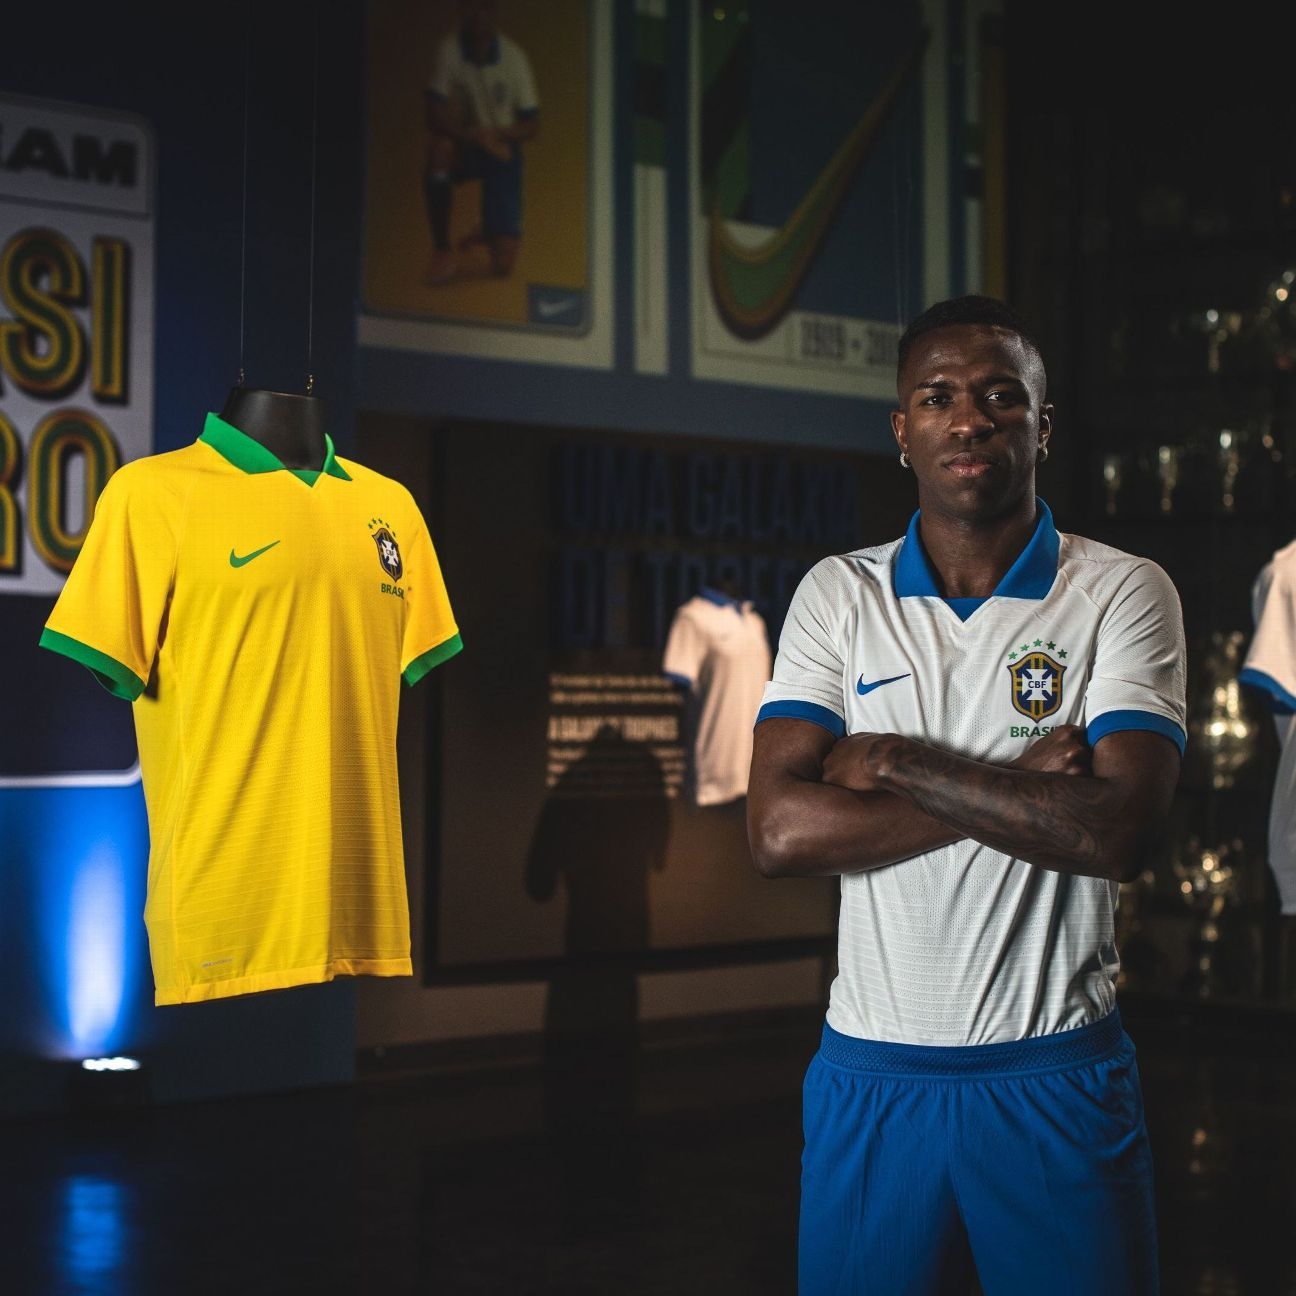 Brazil and Real Madrid striker Vinicius Jr. models Brazil's new white jersey, which the team will wear in matches at the 2019 Copa America.